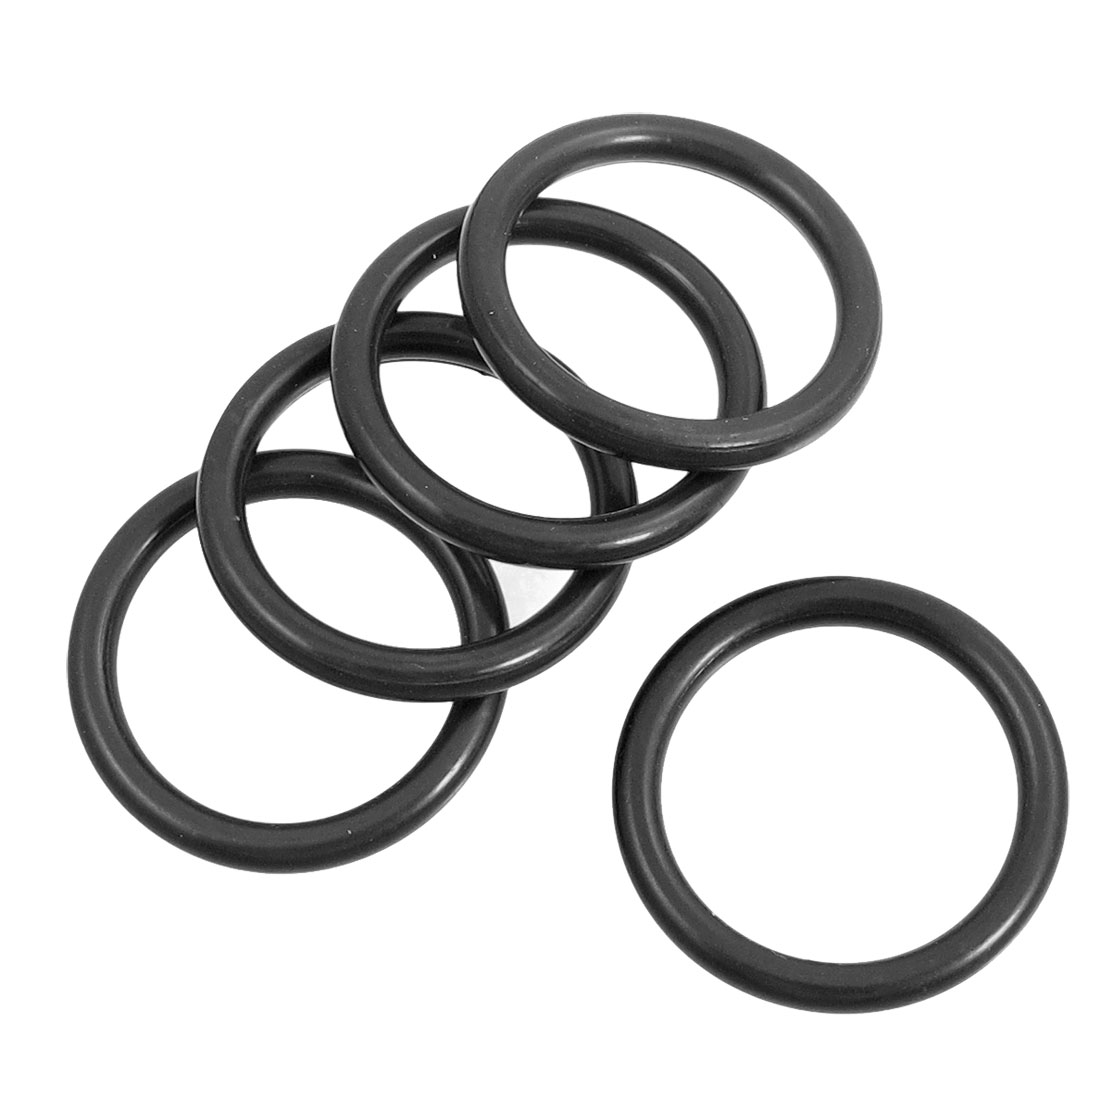 5 Pcs 30mm x 3mm Mechanical Rubber O Ring Oil Seal Gaskets Replacement